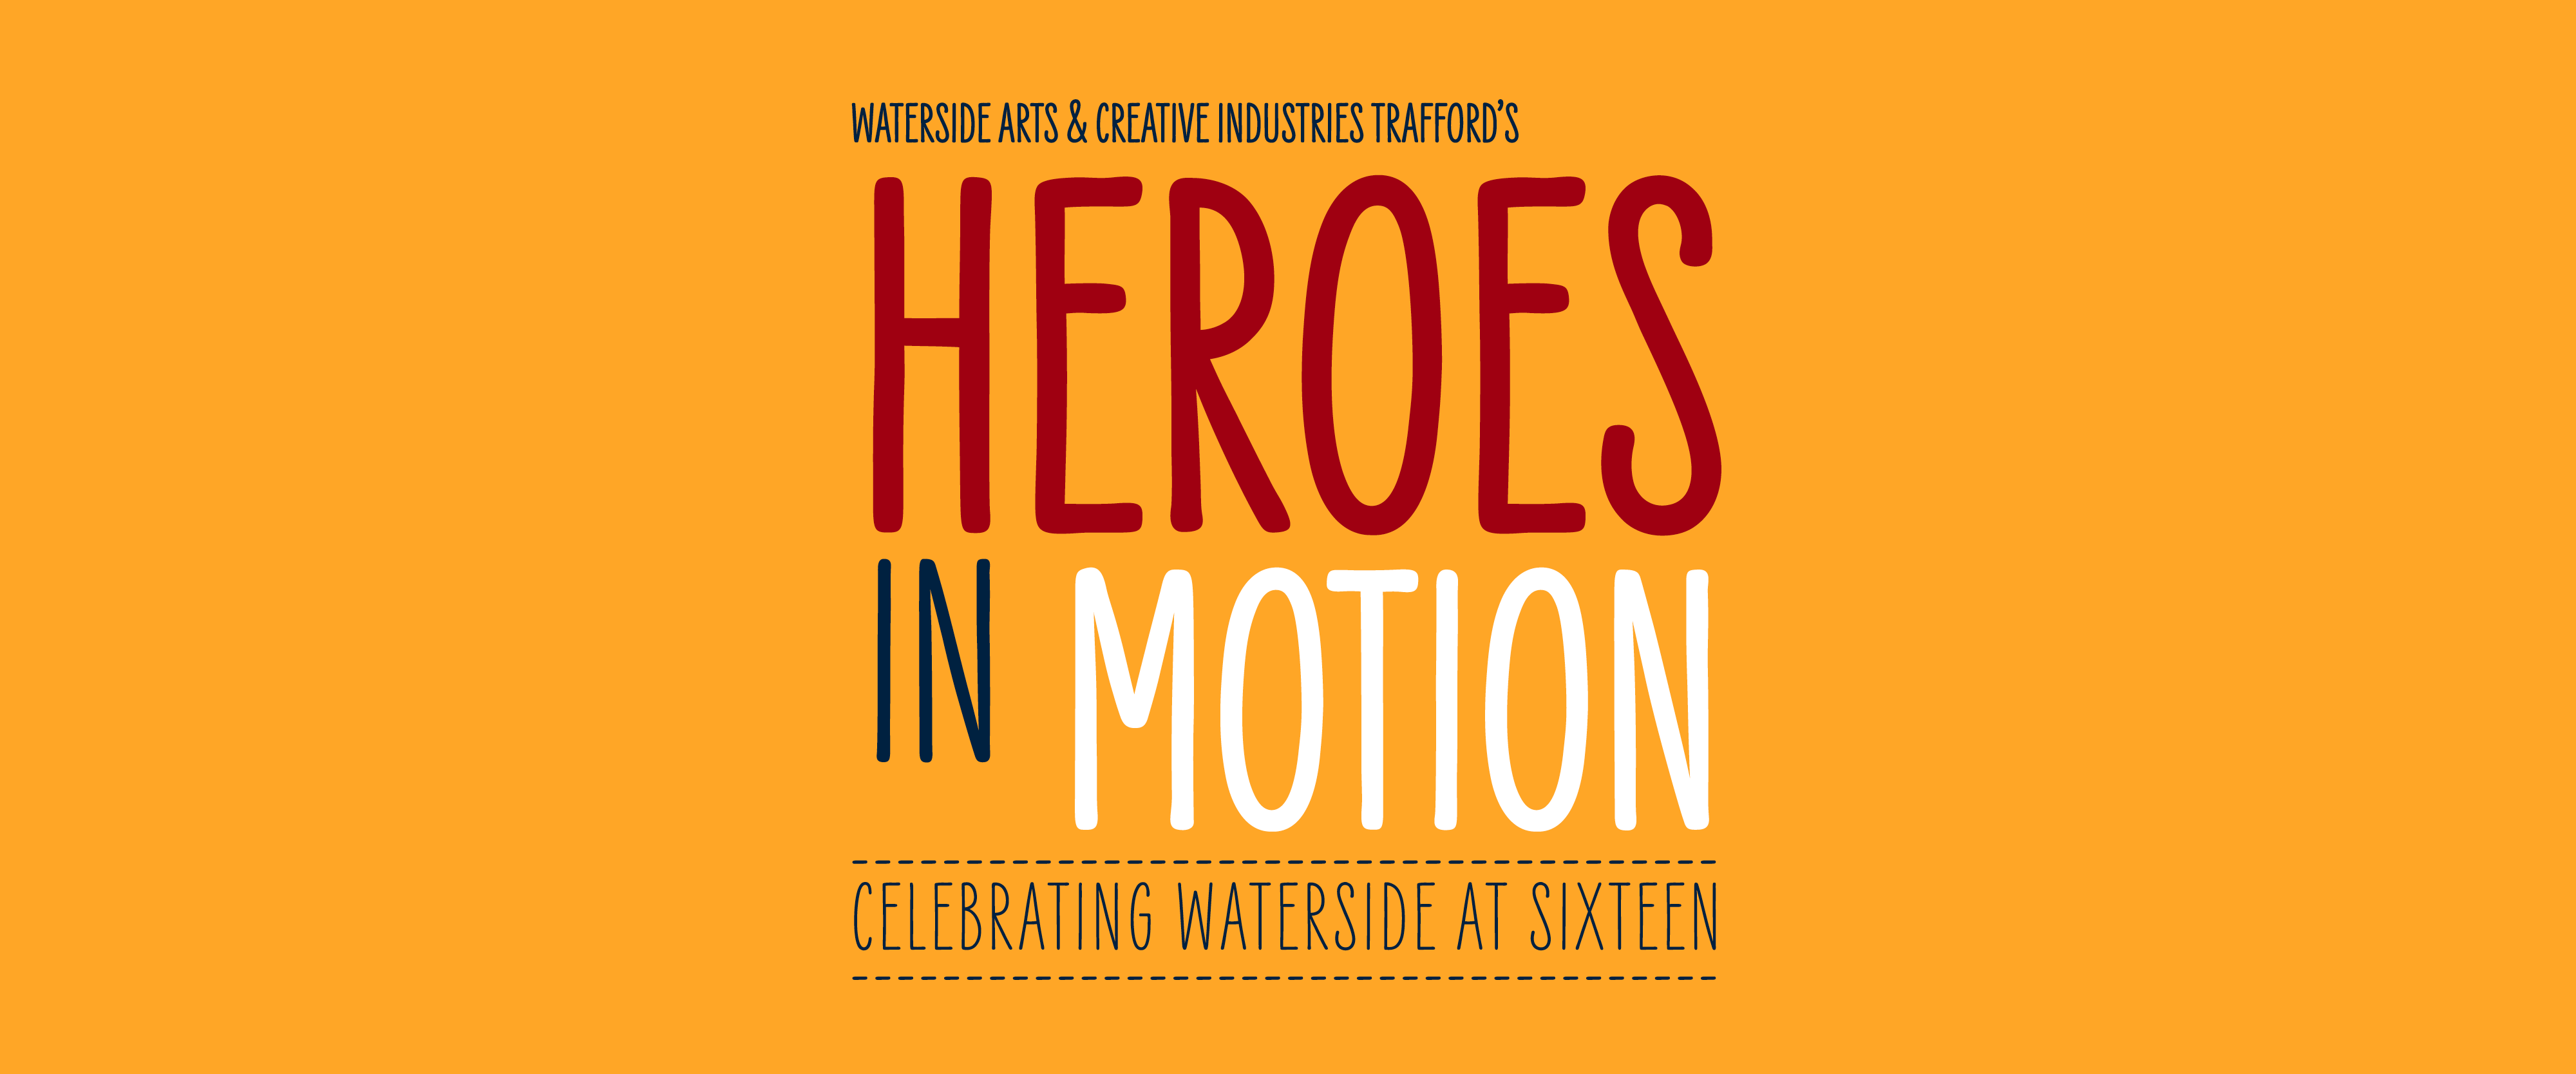 Heroes in Motion logo on Orange RGB